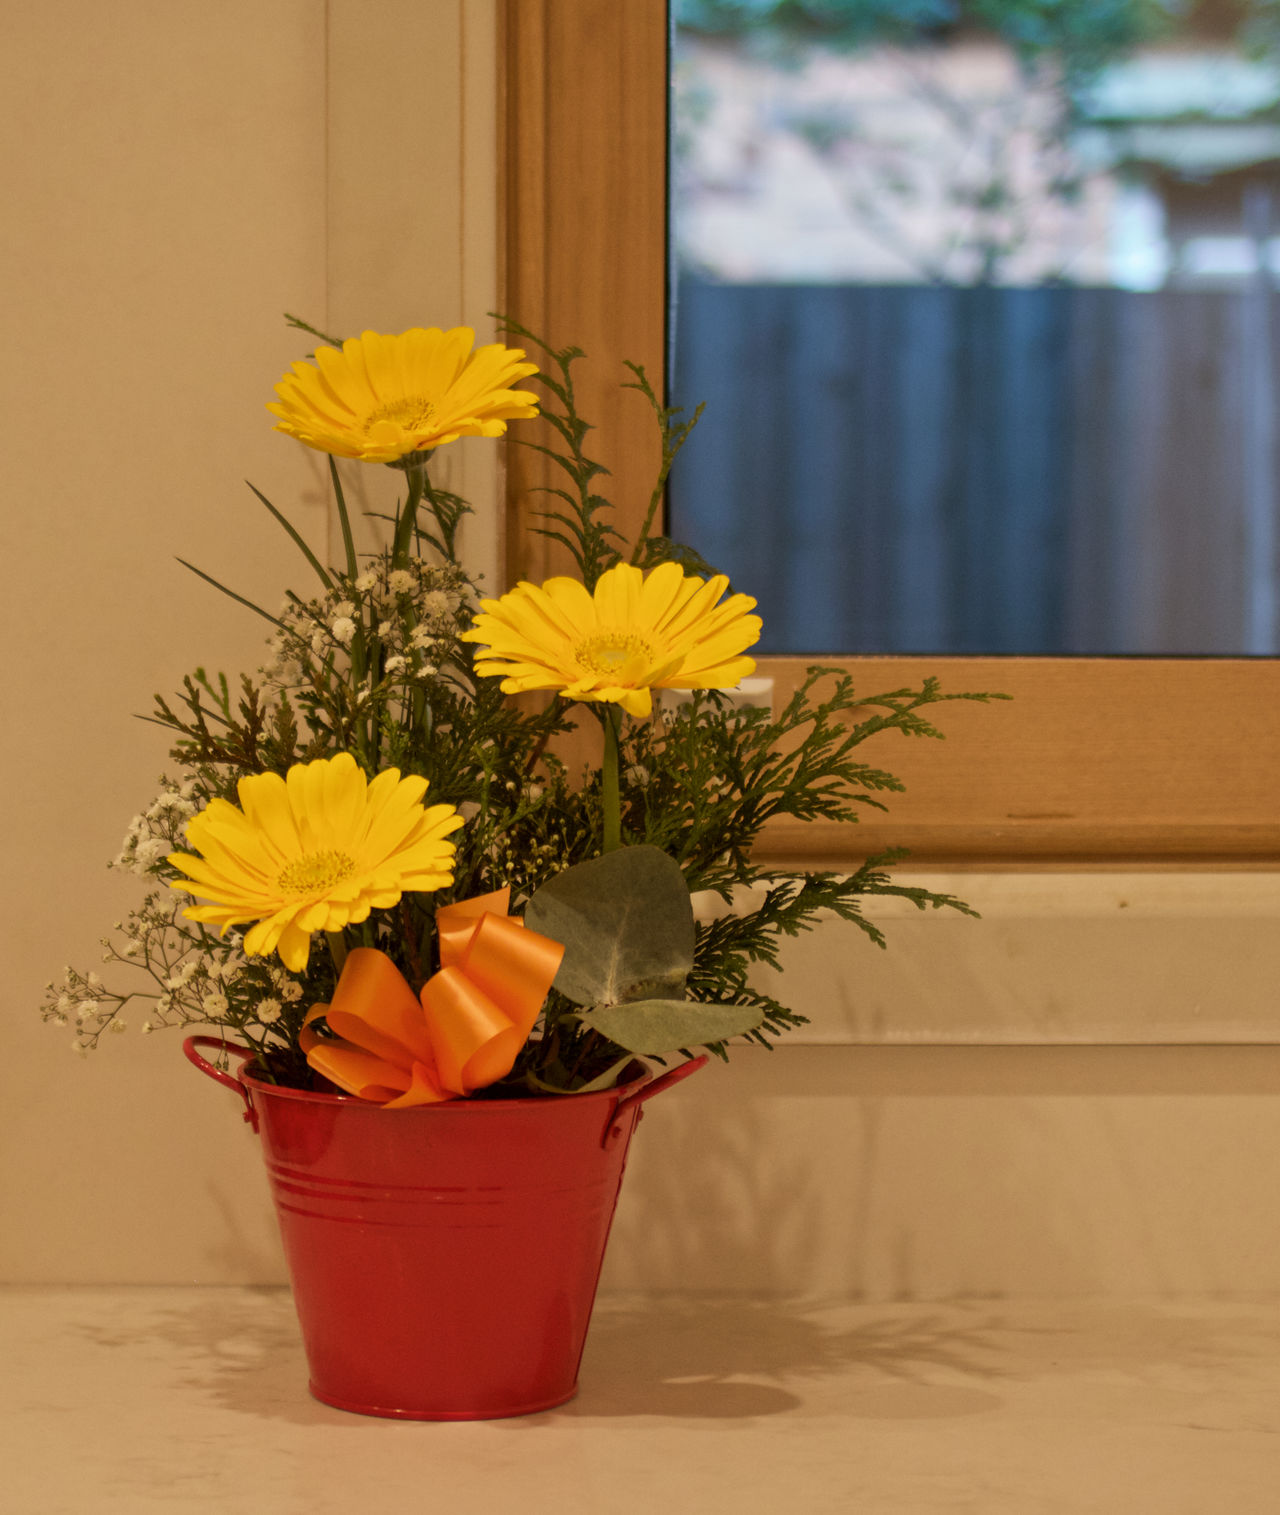 Beauty In Nature Bench Bench Top Close-up Day Flower Flower Head Flowers Fragility Freshness Growth Home Interior Indoors  Indoors  Nature No People Petal Plant Potted Plant Still Life Table Vase Warm Yellow Yellow Flowers